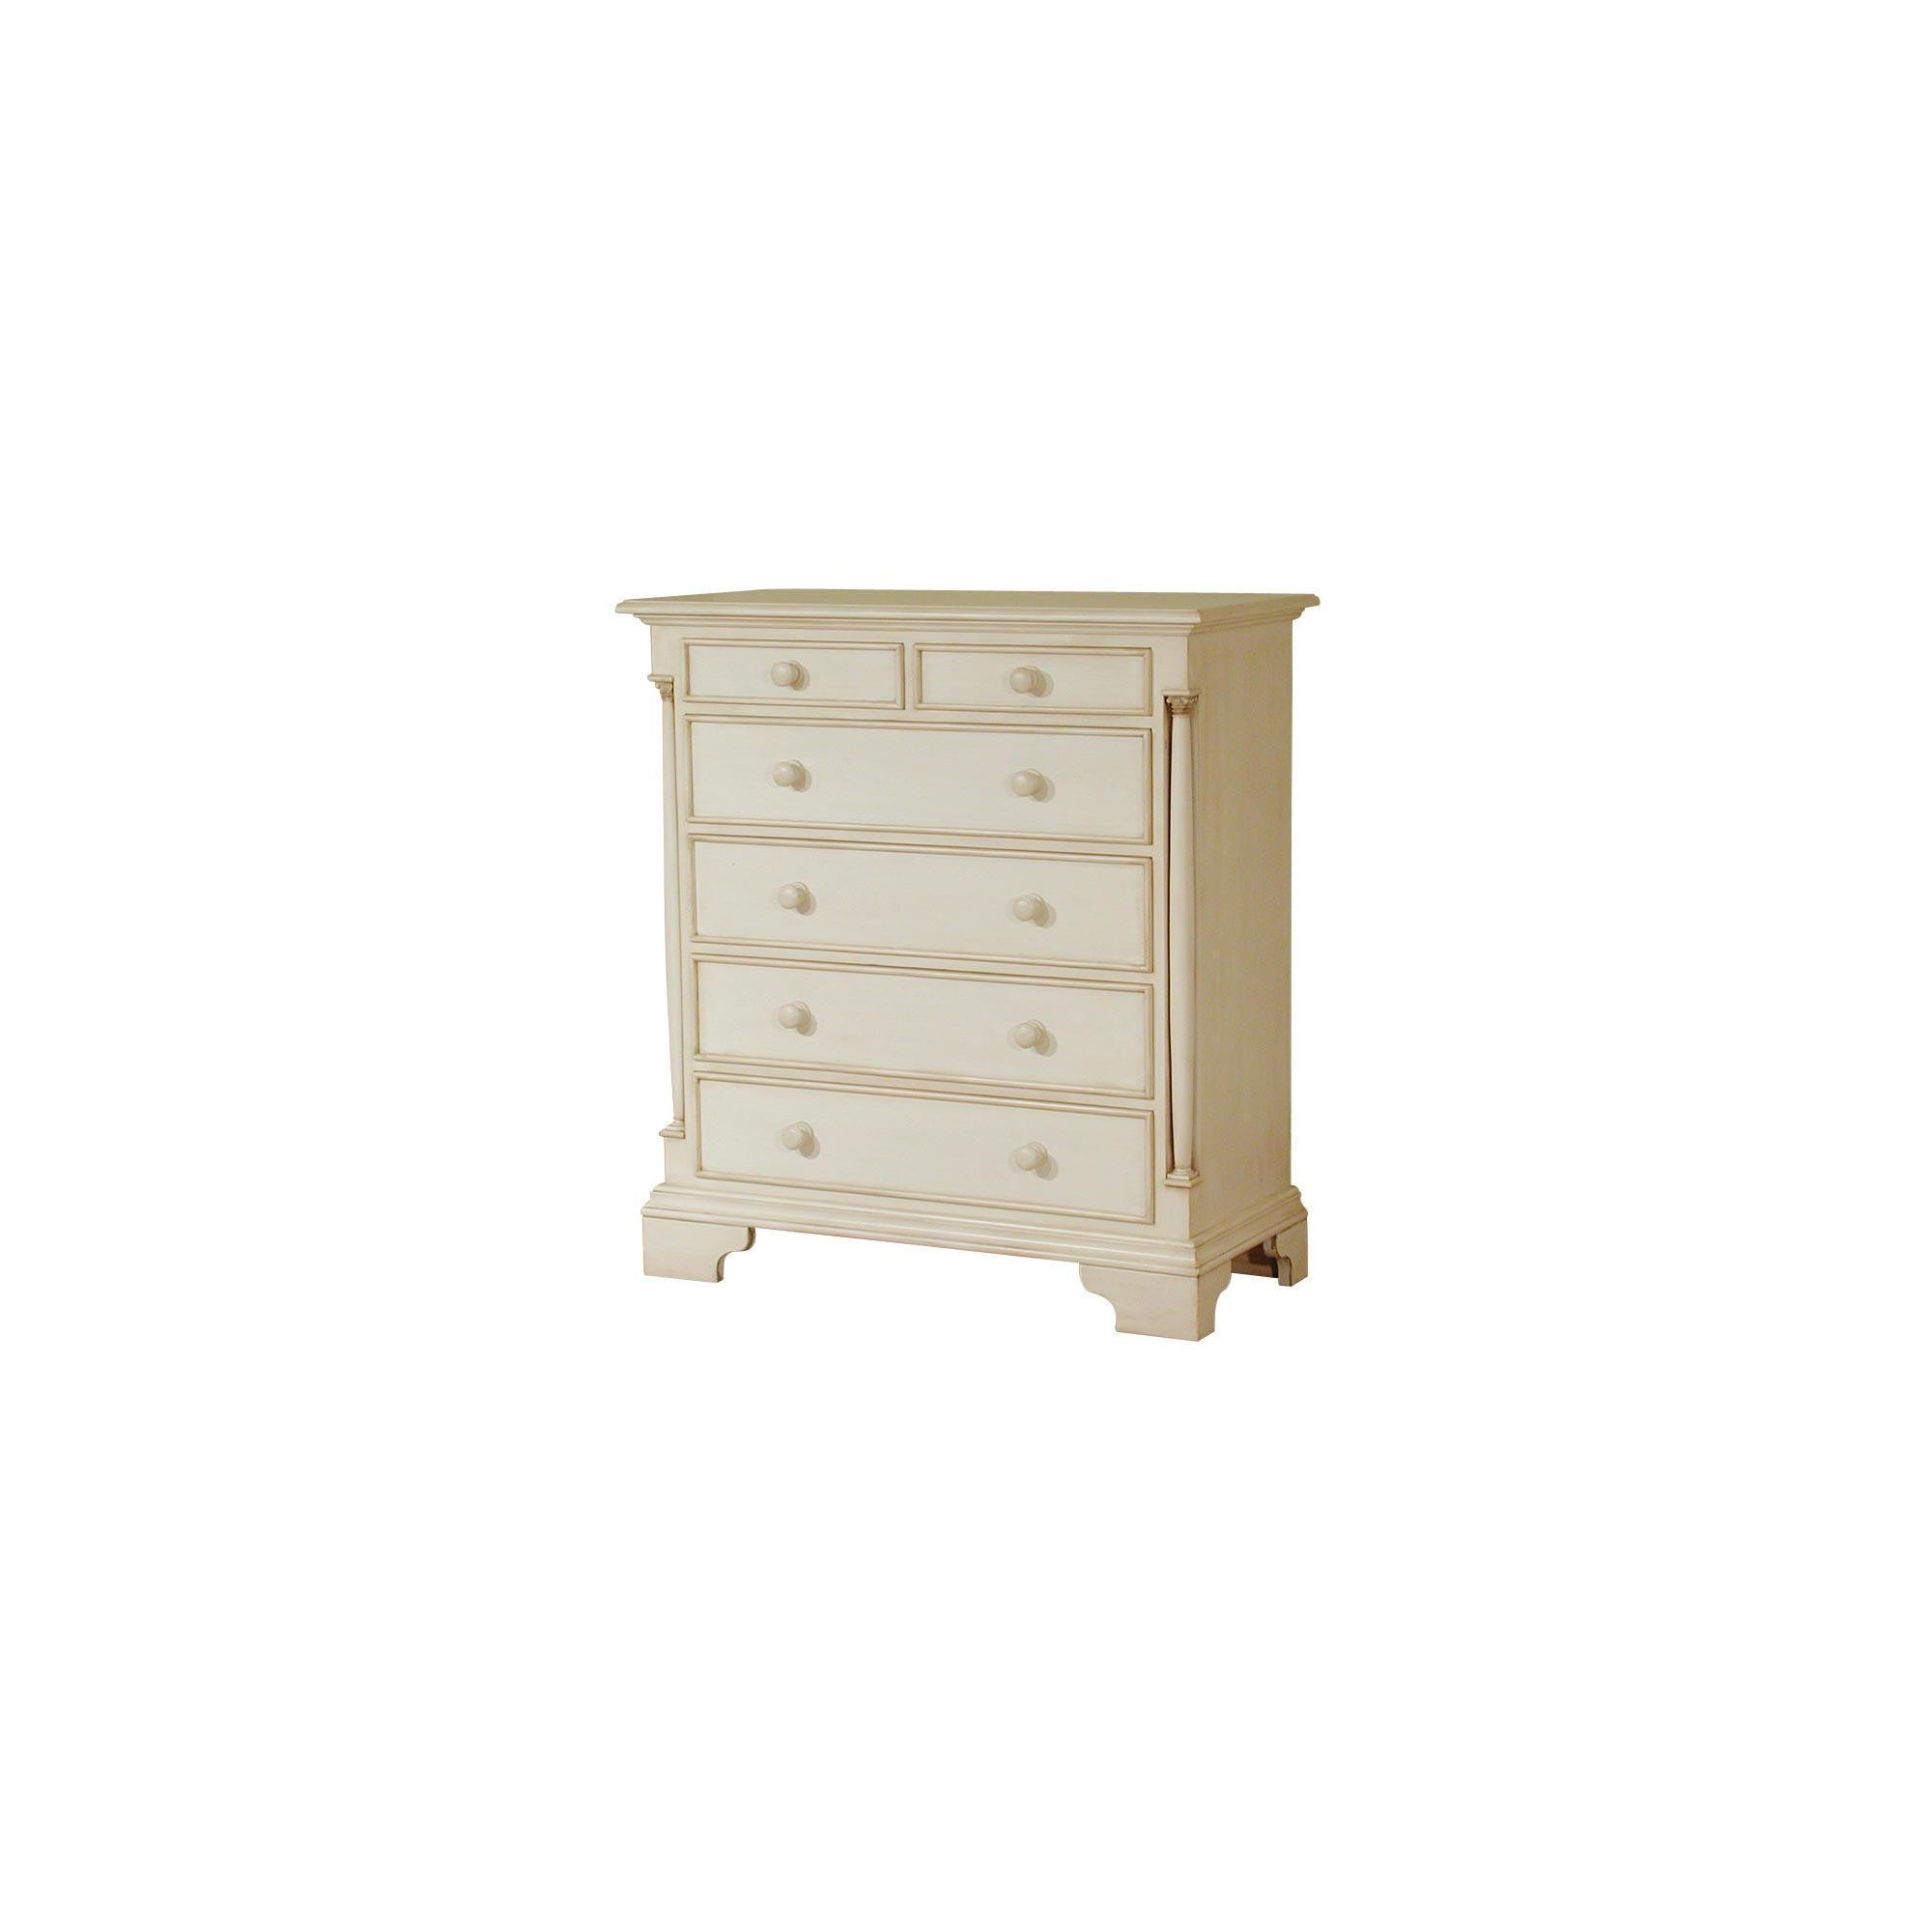 Alterton Furniture Canterbury 2 Over 4 Drawer Chest at Tesco Direct